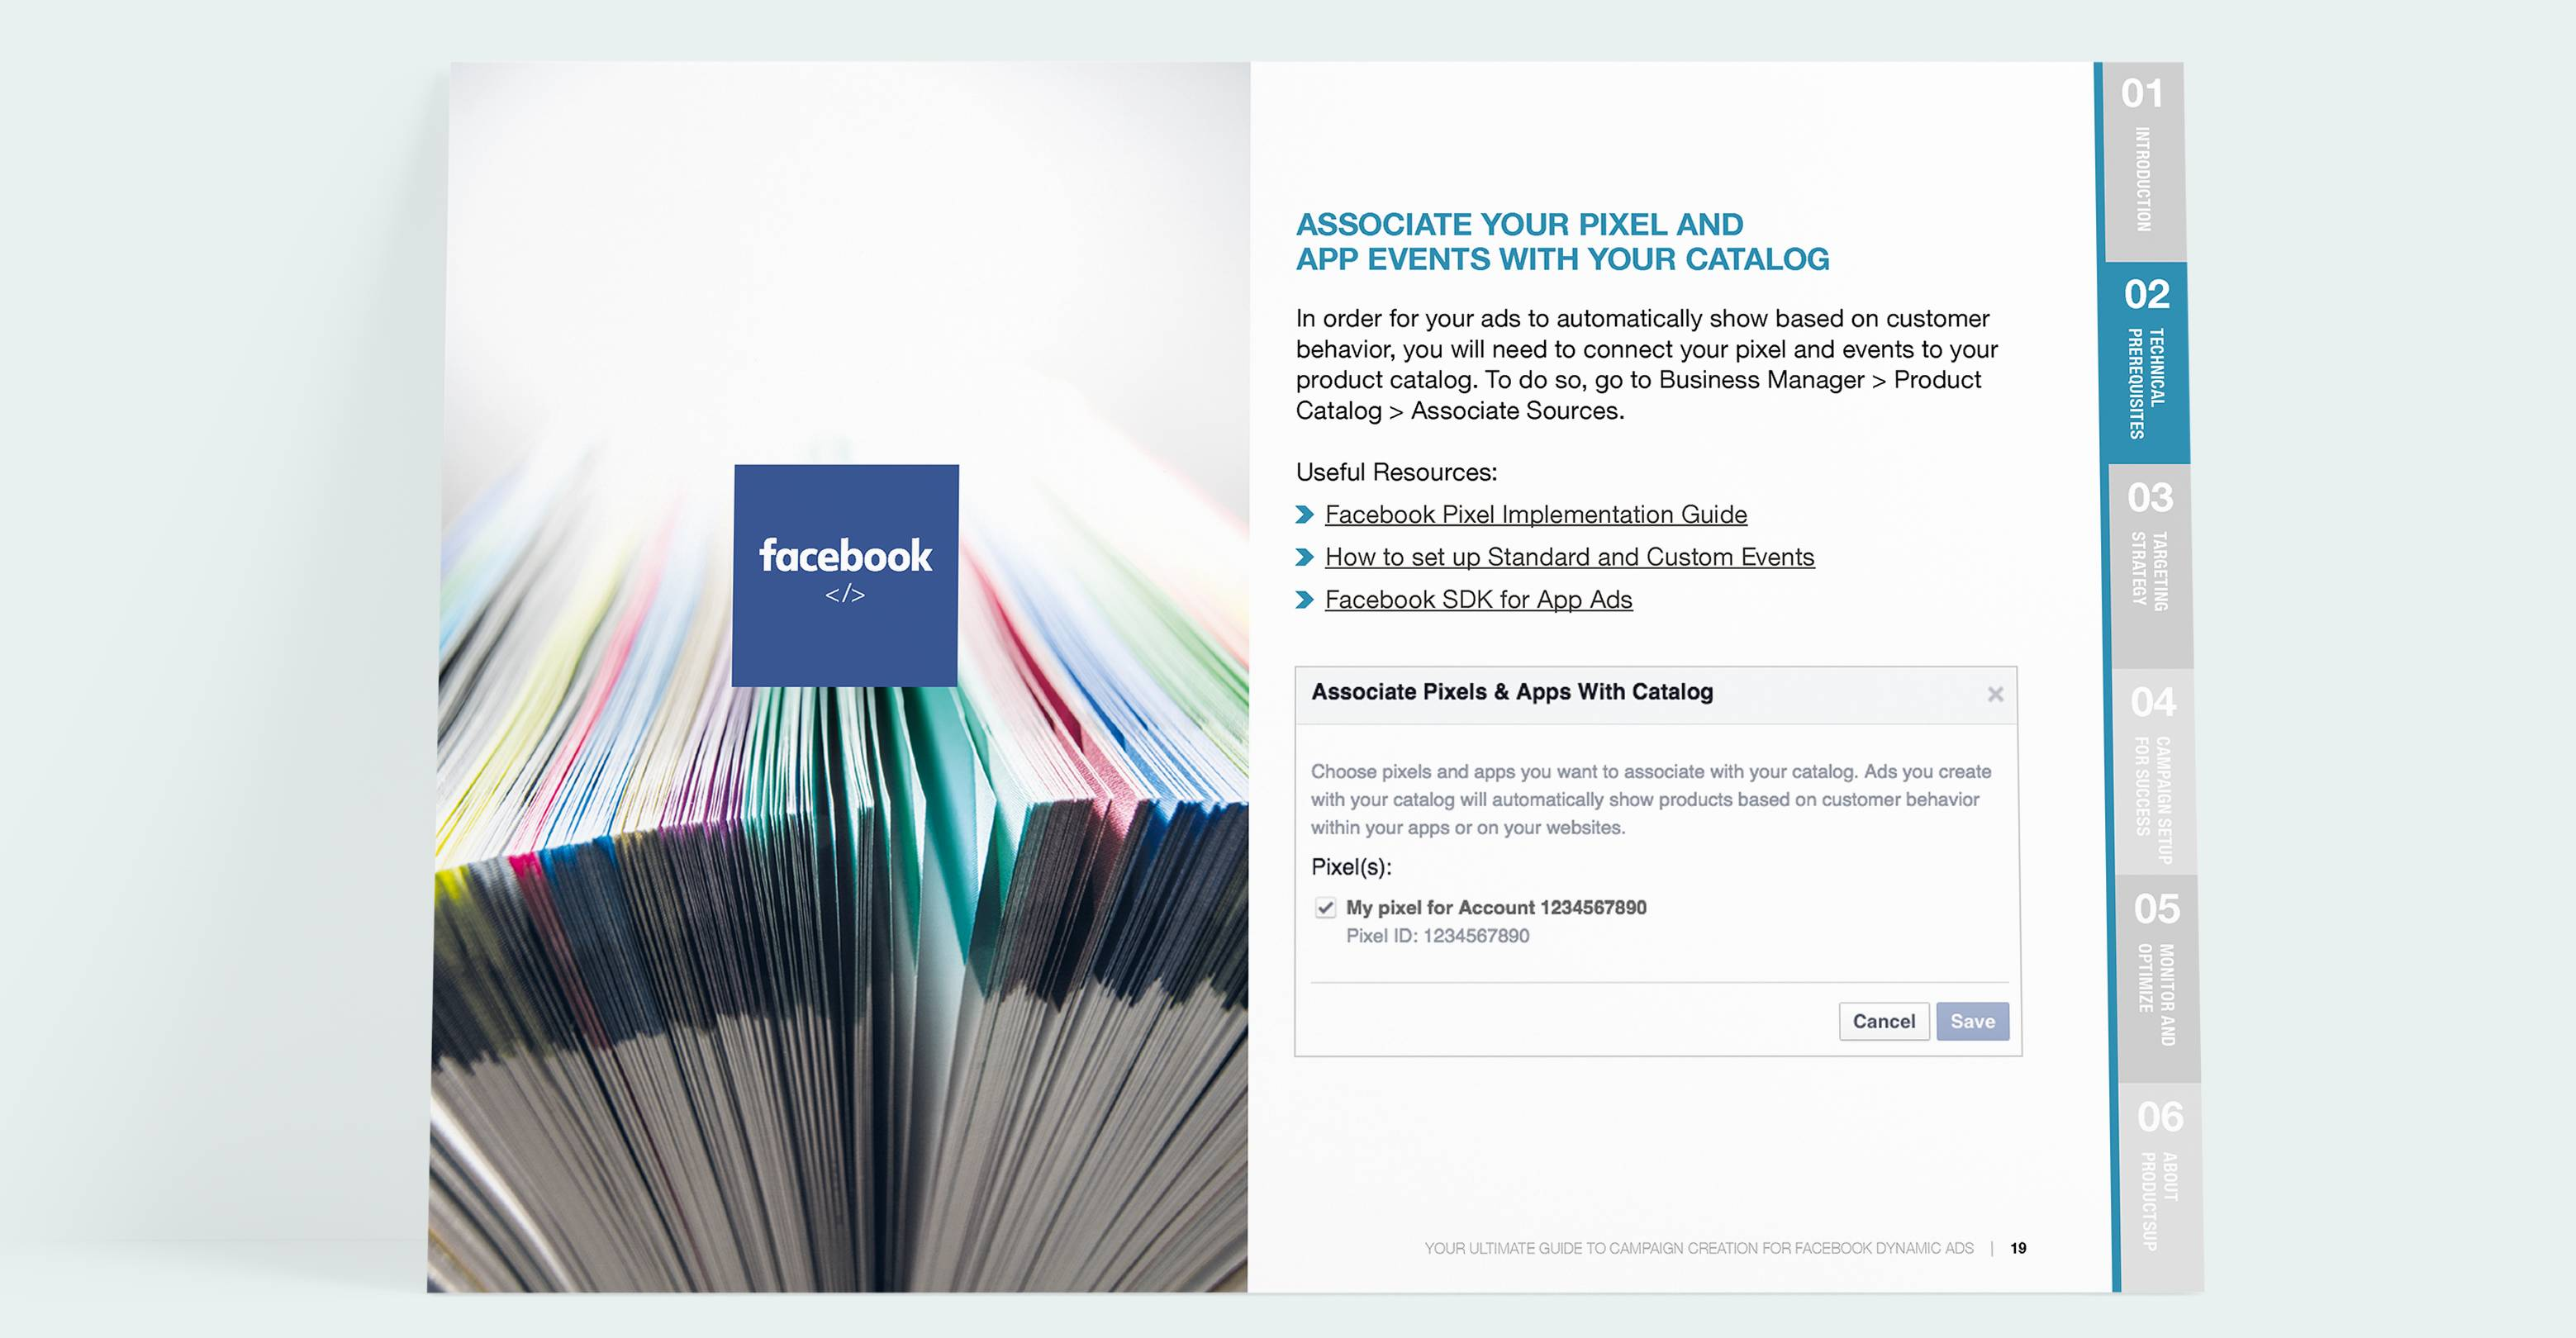 Your Complete Campaign Guide to Facebook Dynamic Ads - Preview 1